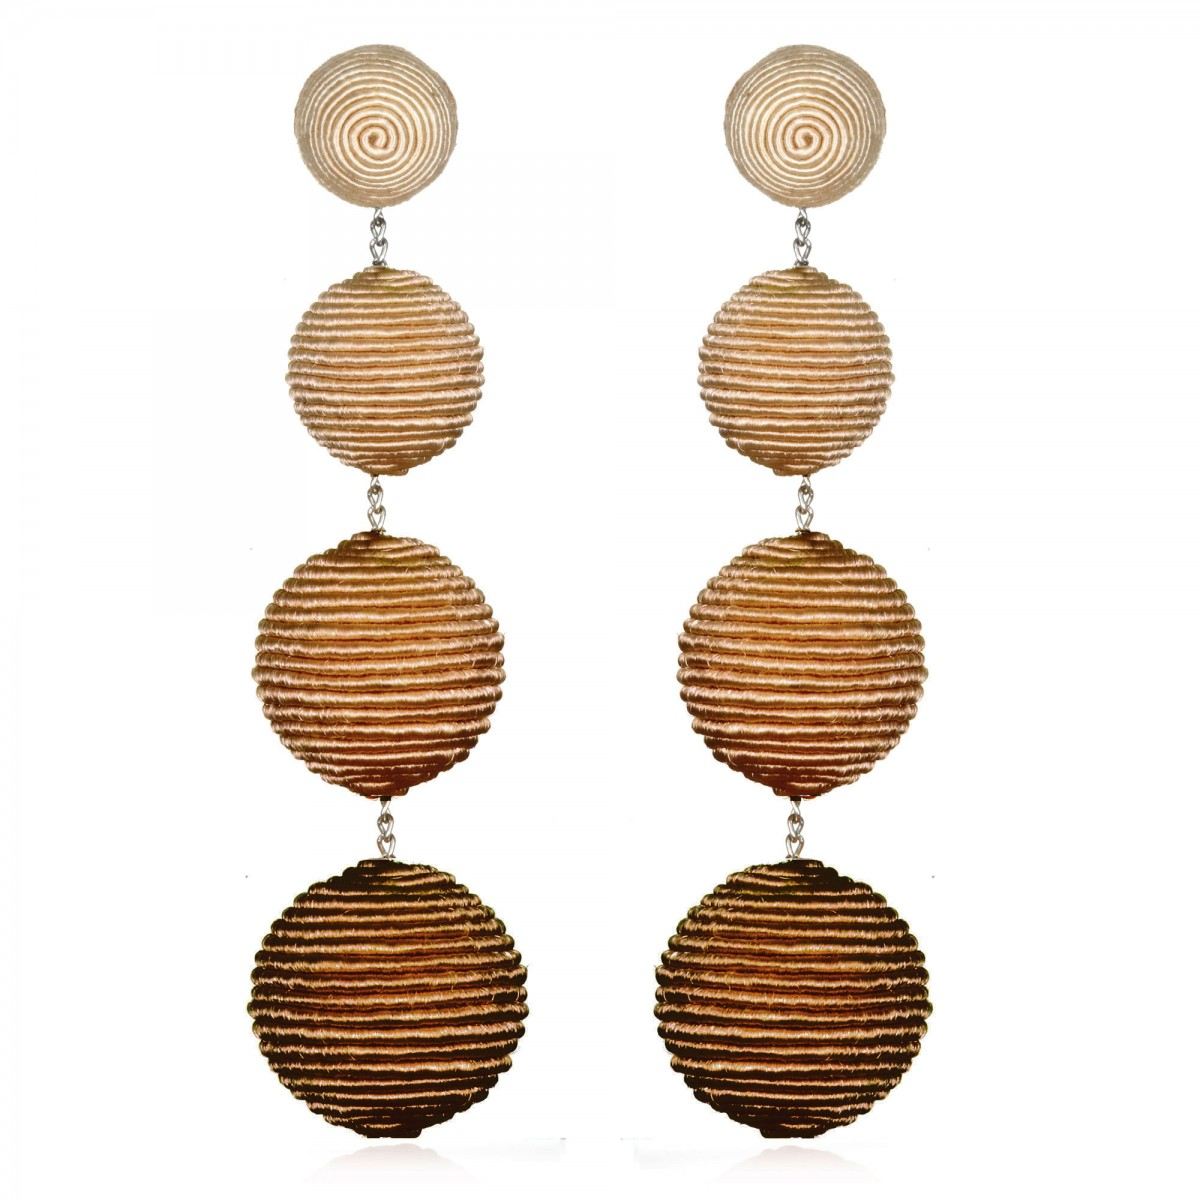 Beige Ombre Bon Bon Earrings by SUZANNA DAI